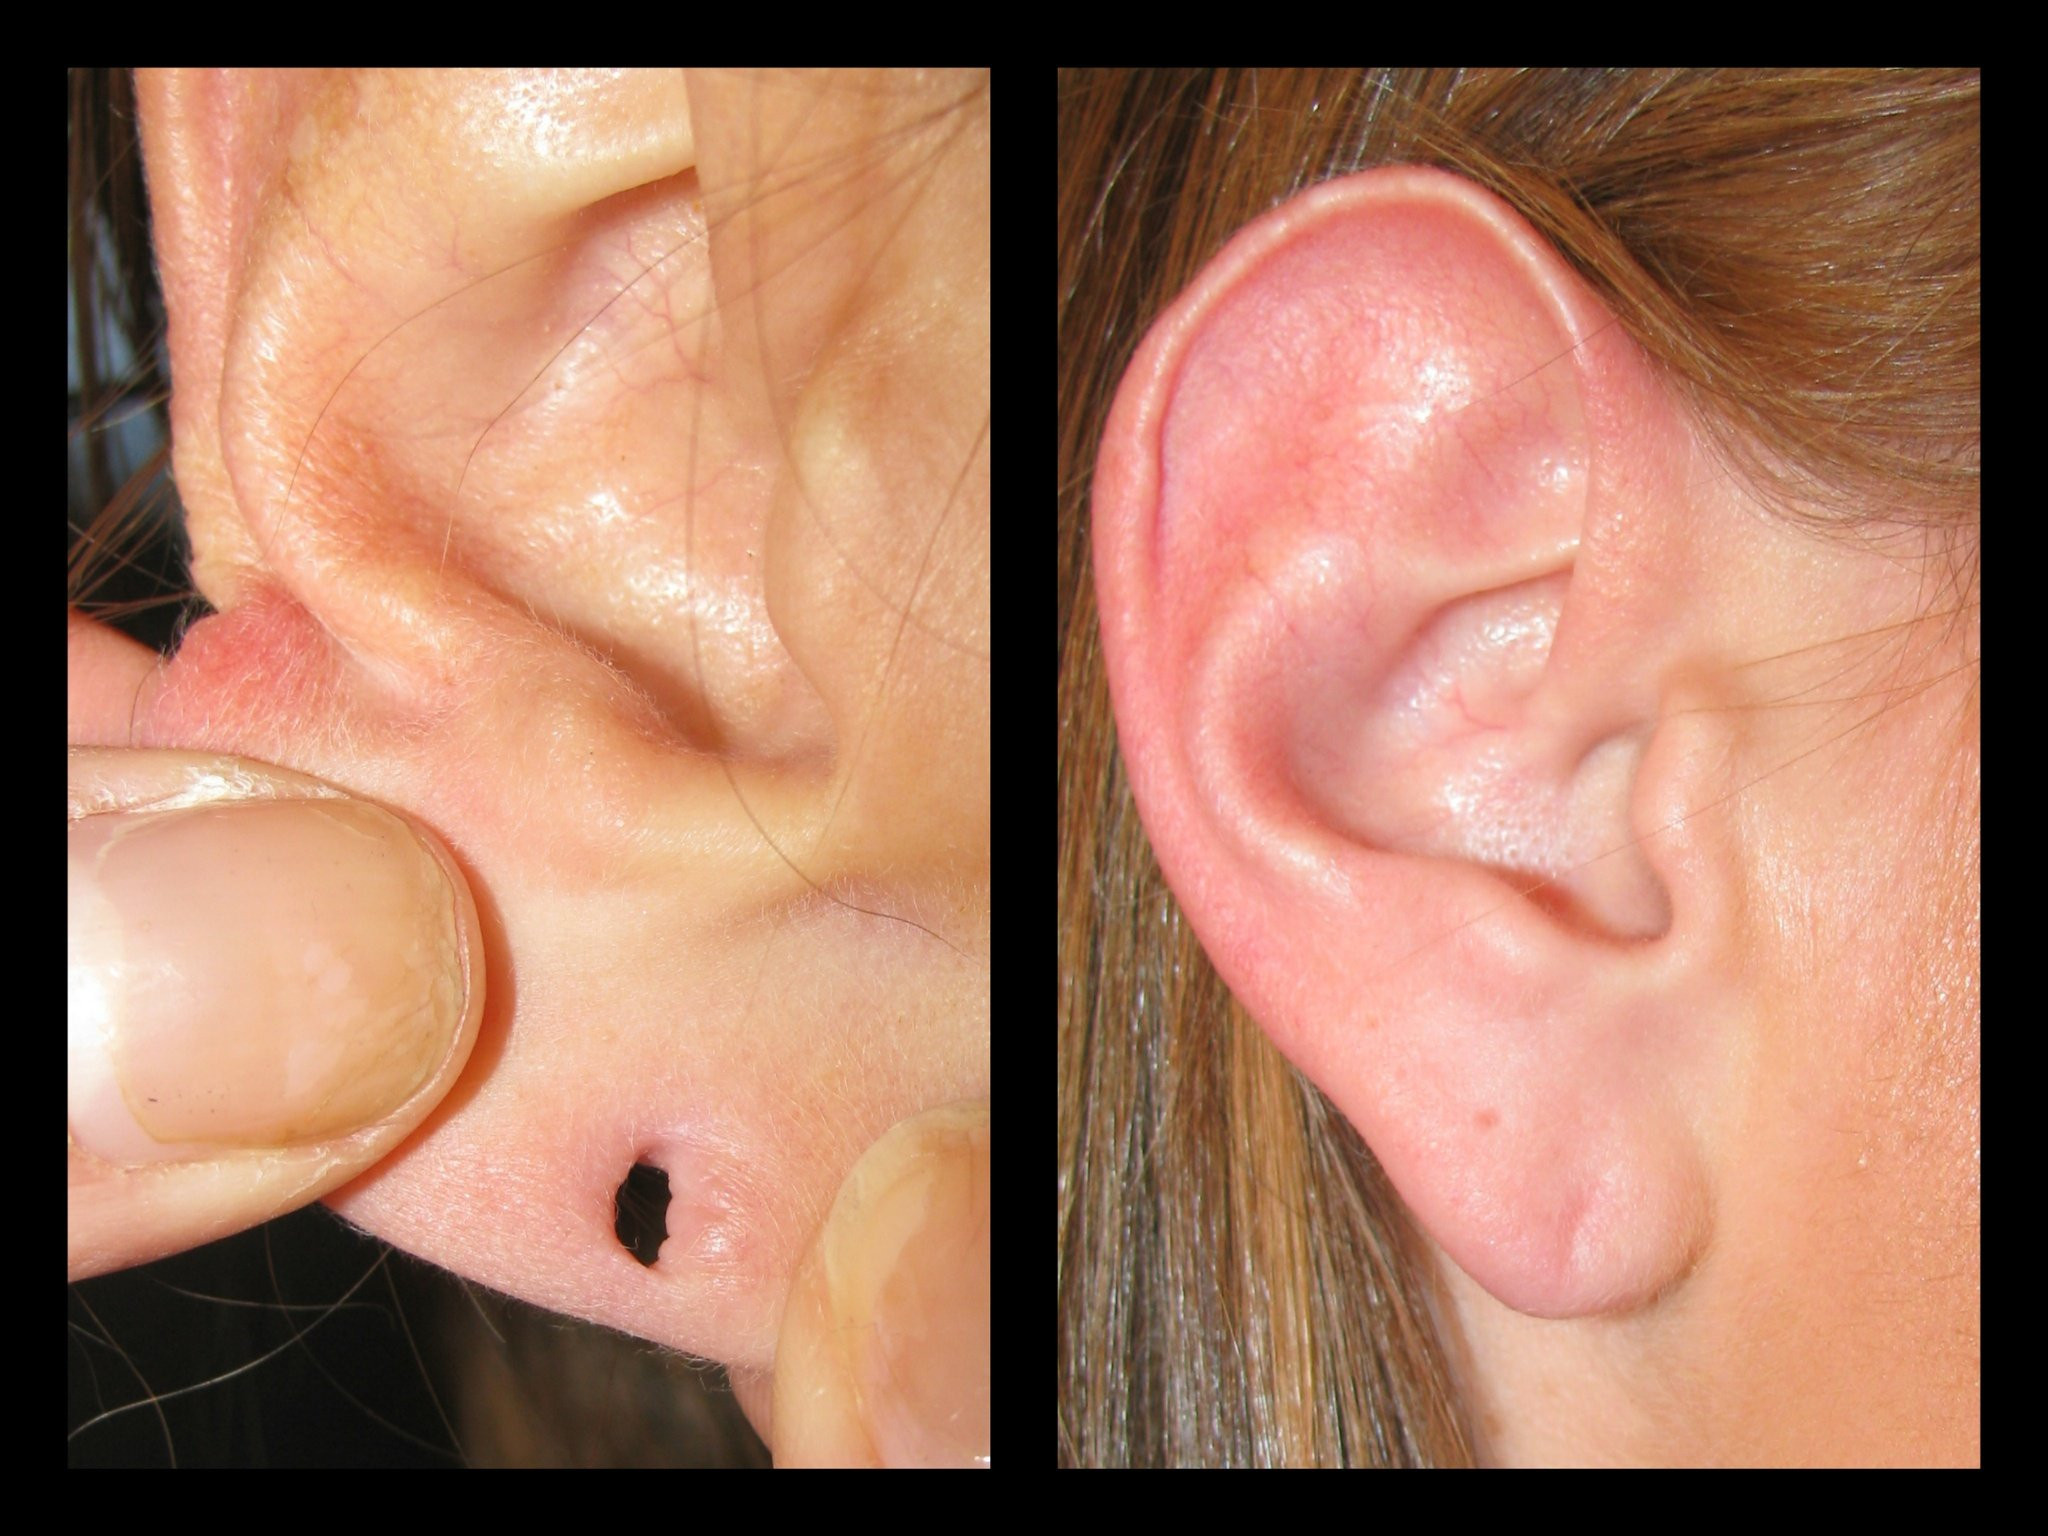 ripped earlobe, earlobe repair boise, before and after silk touch